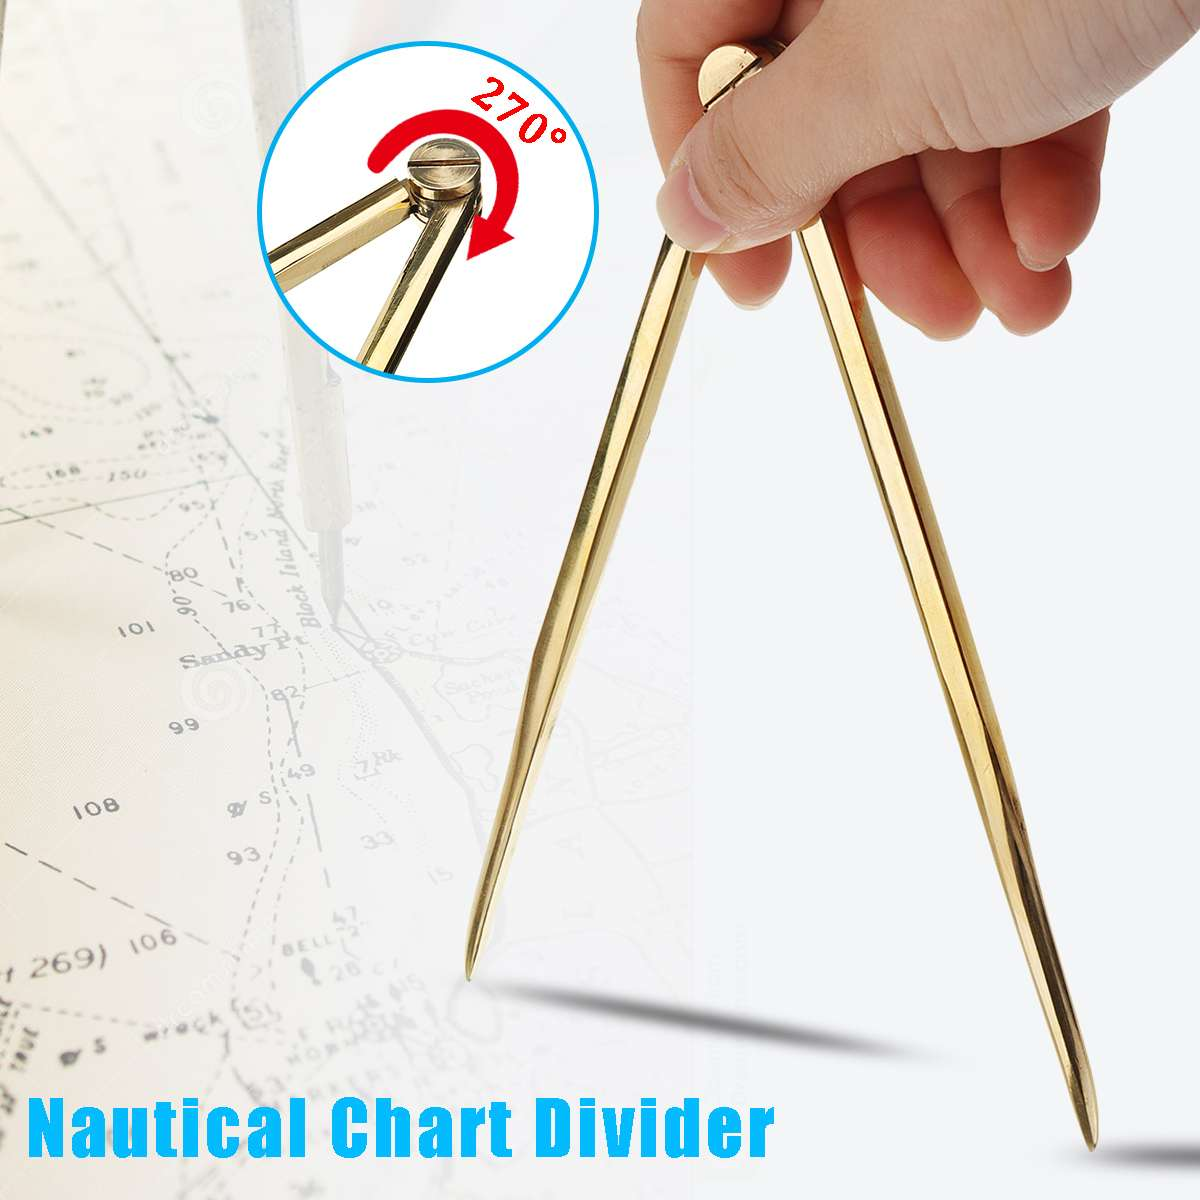 Solid Brass 168mm Nautical Chart Straight Divider Marine Dividing Tool-Compass Portable No Rust For Architects Marine Navigation